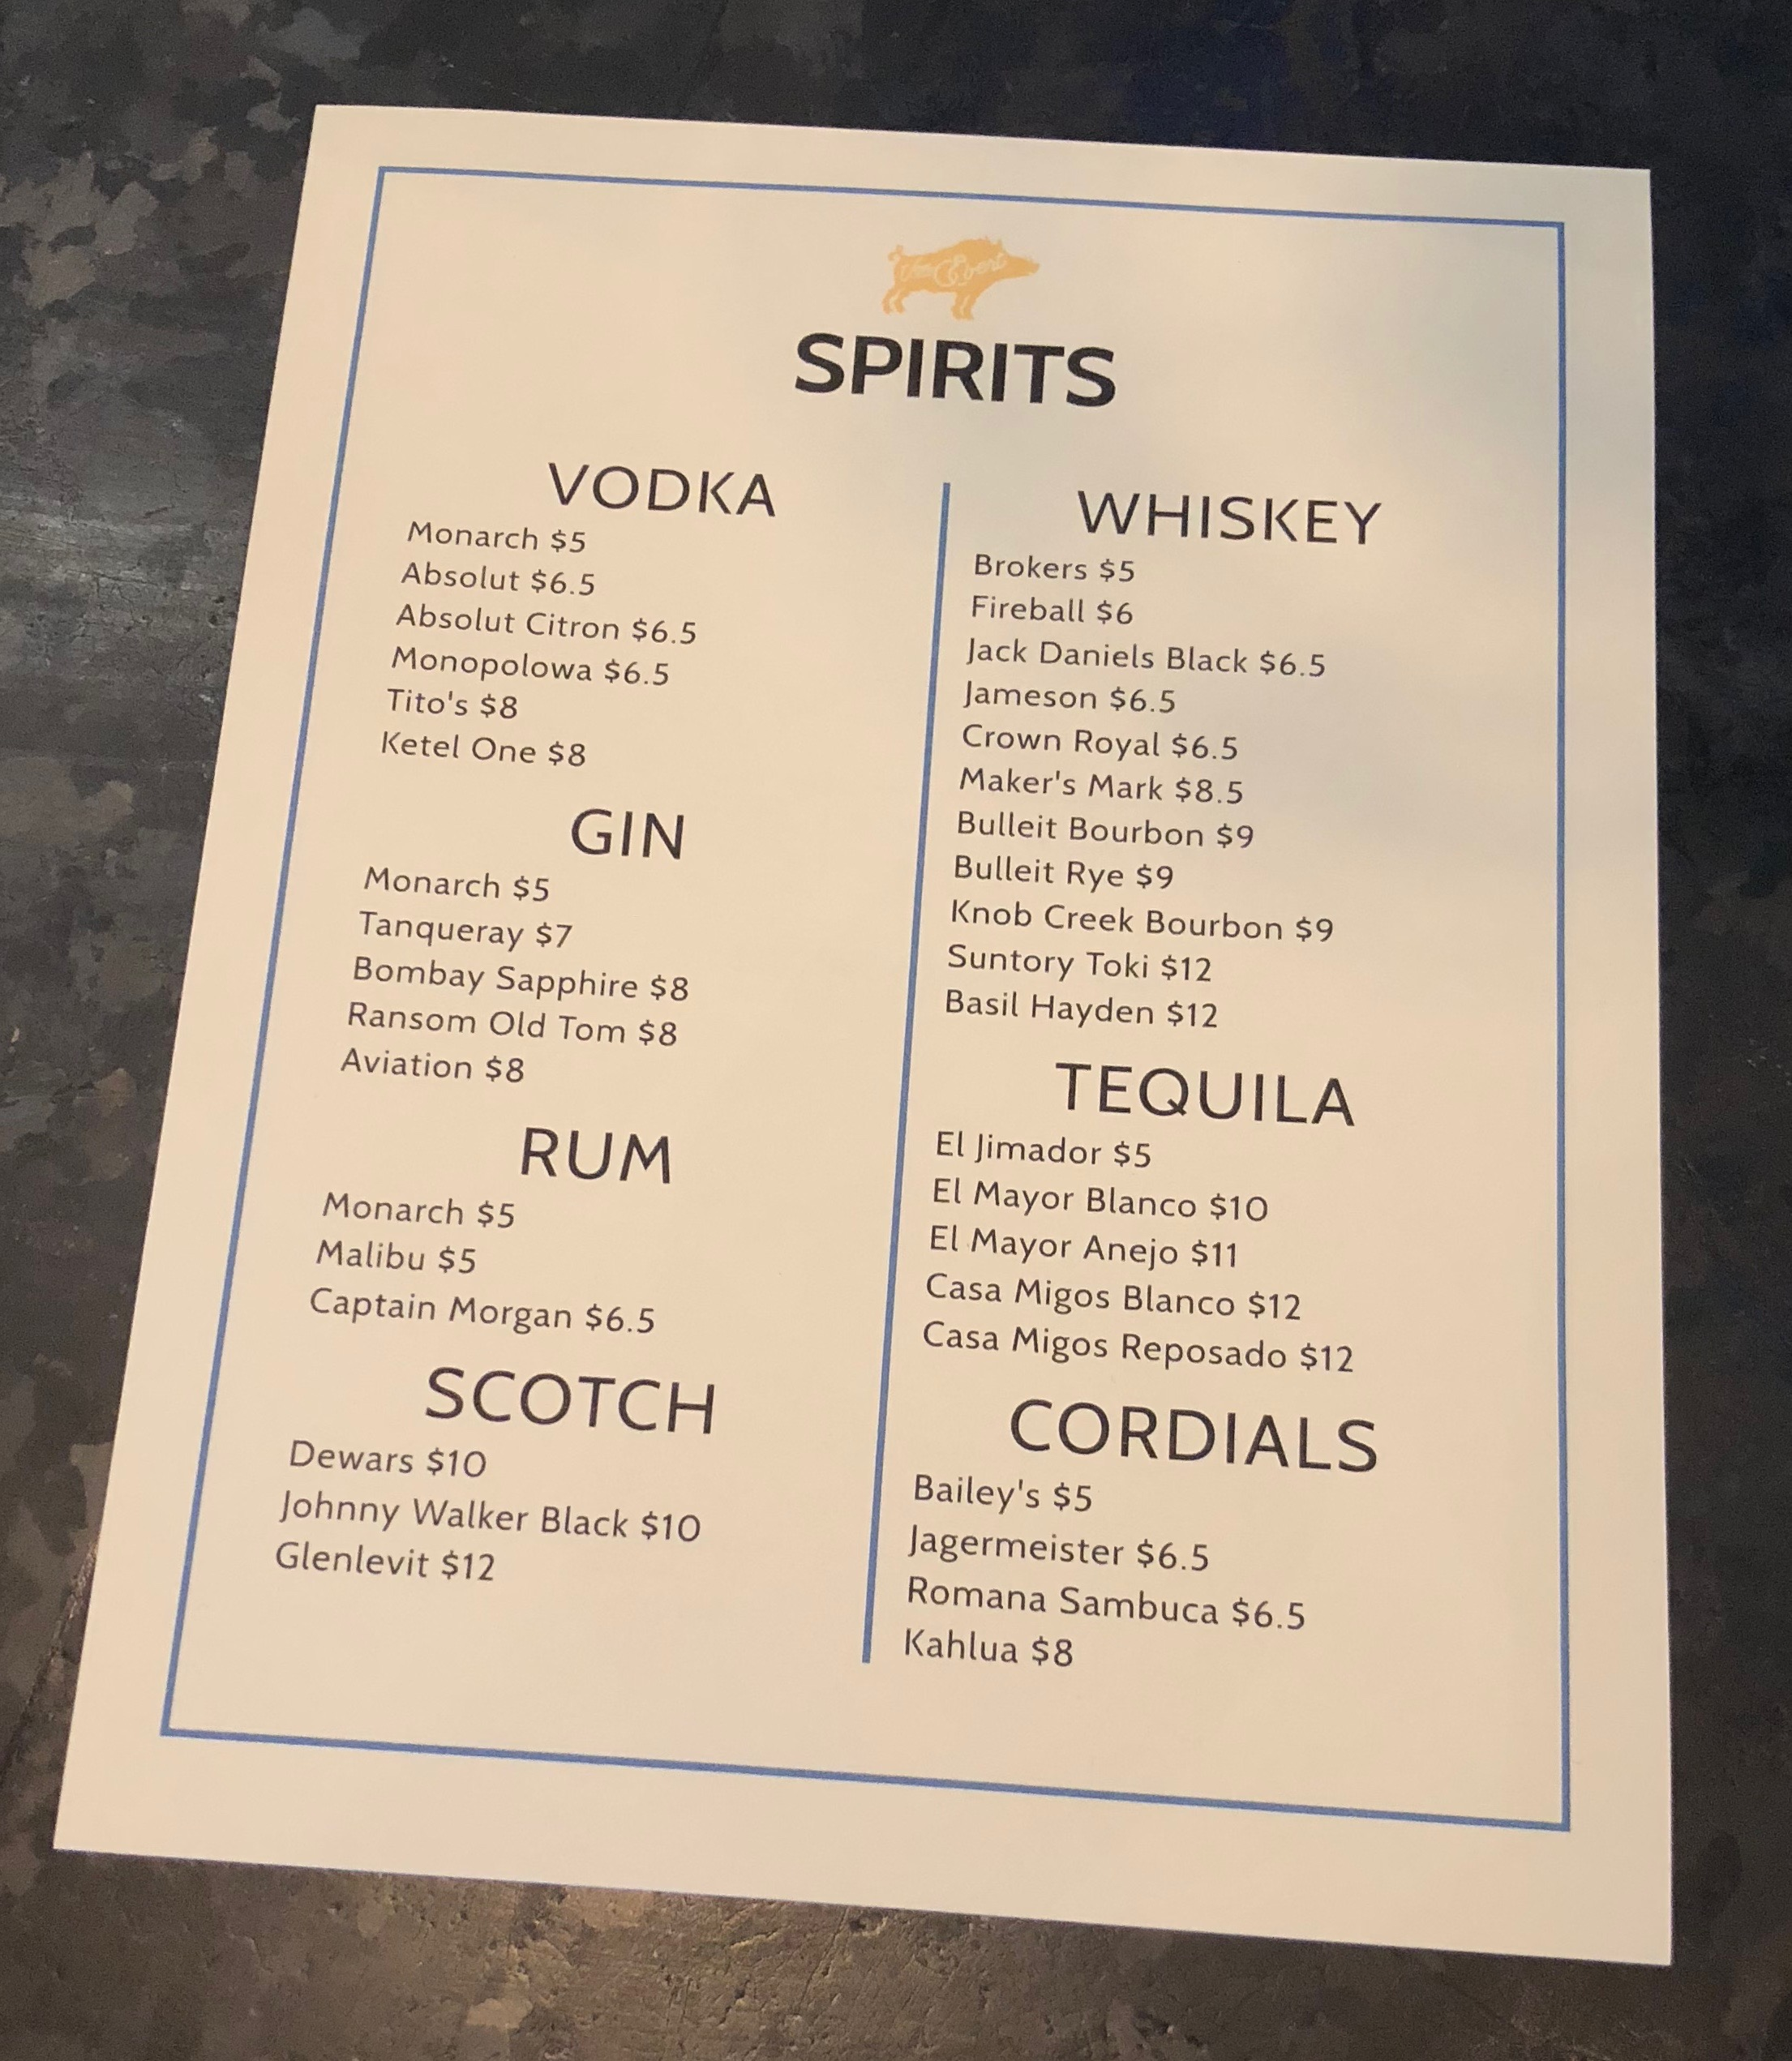 The Spirits Menu at Von Ebert Brewing - East